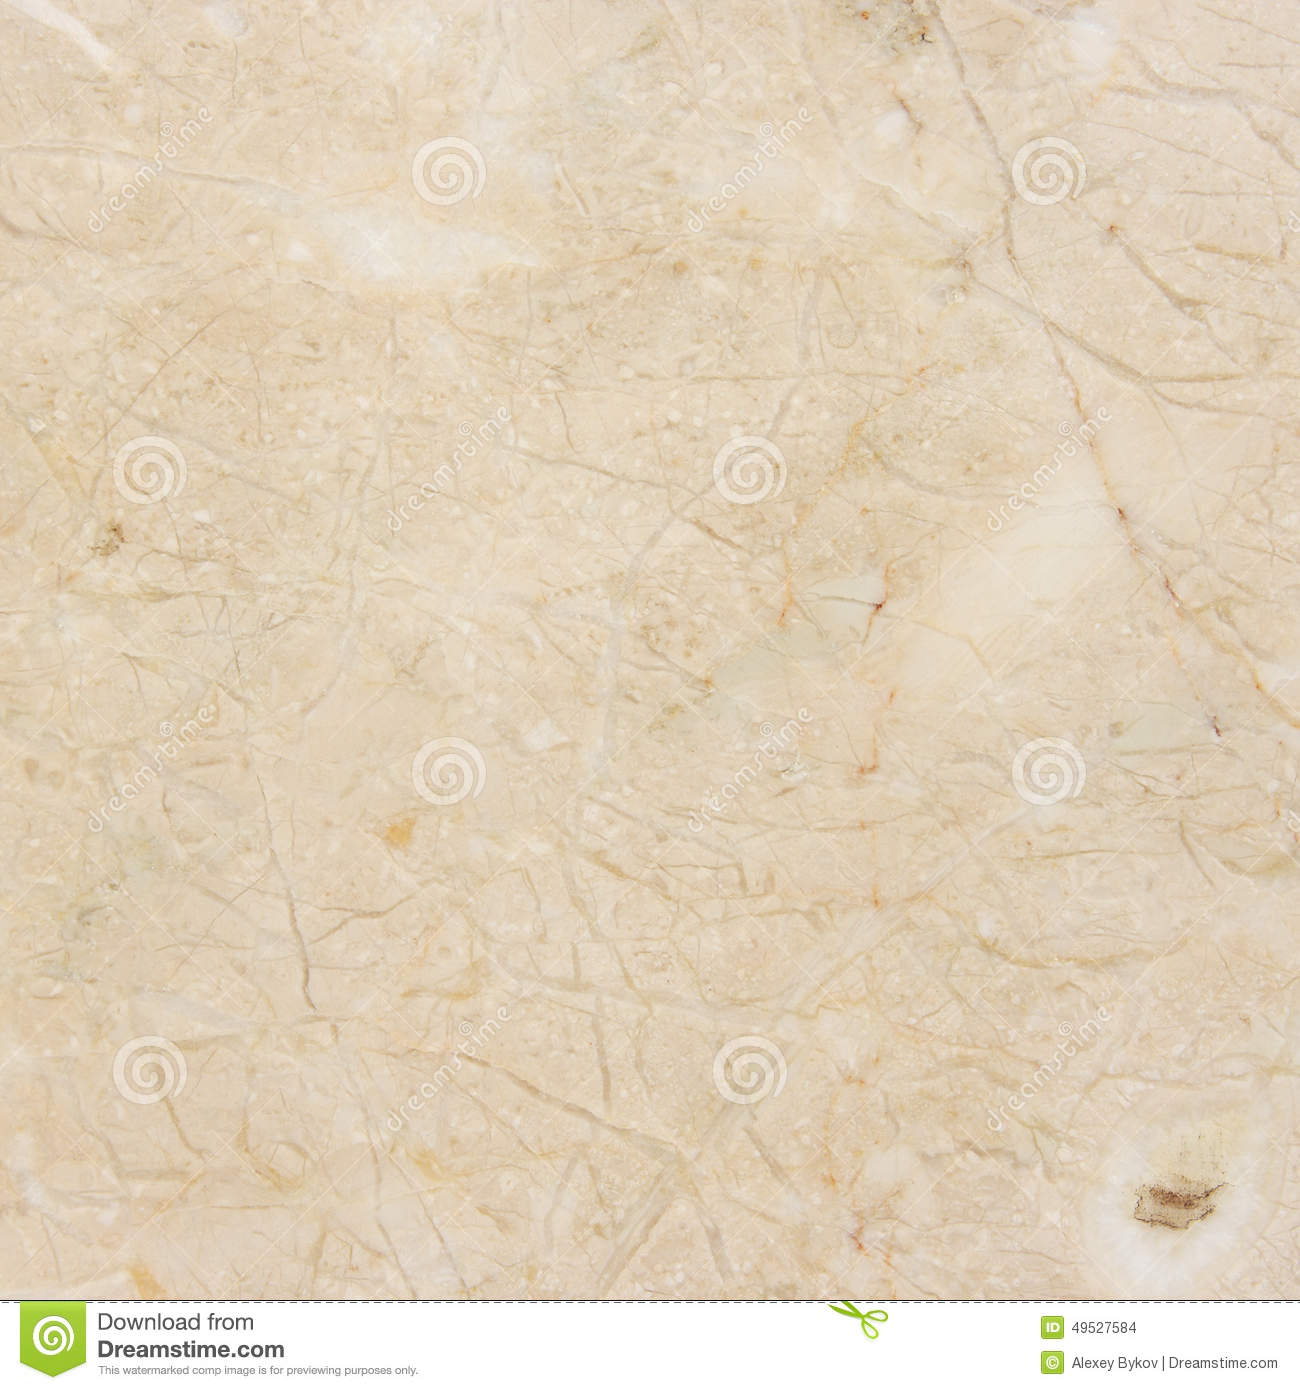 18 613 Italian Marble Background Photos Free Royalty Free Stock Photos From Dreamstime